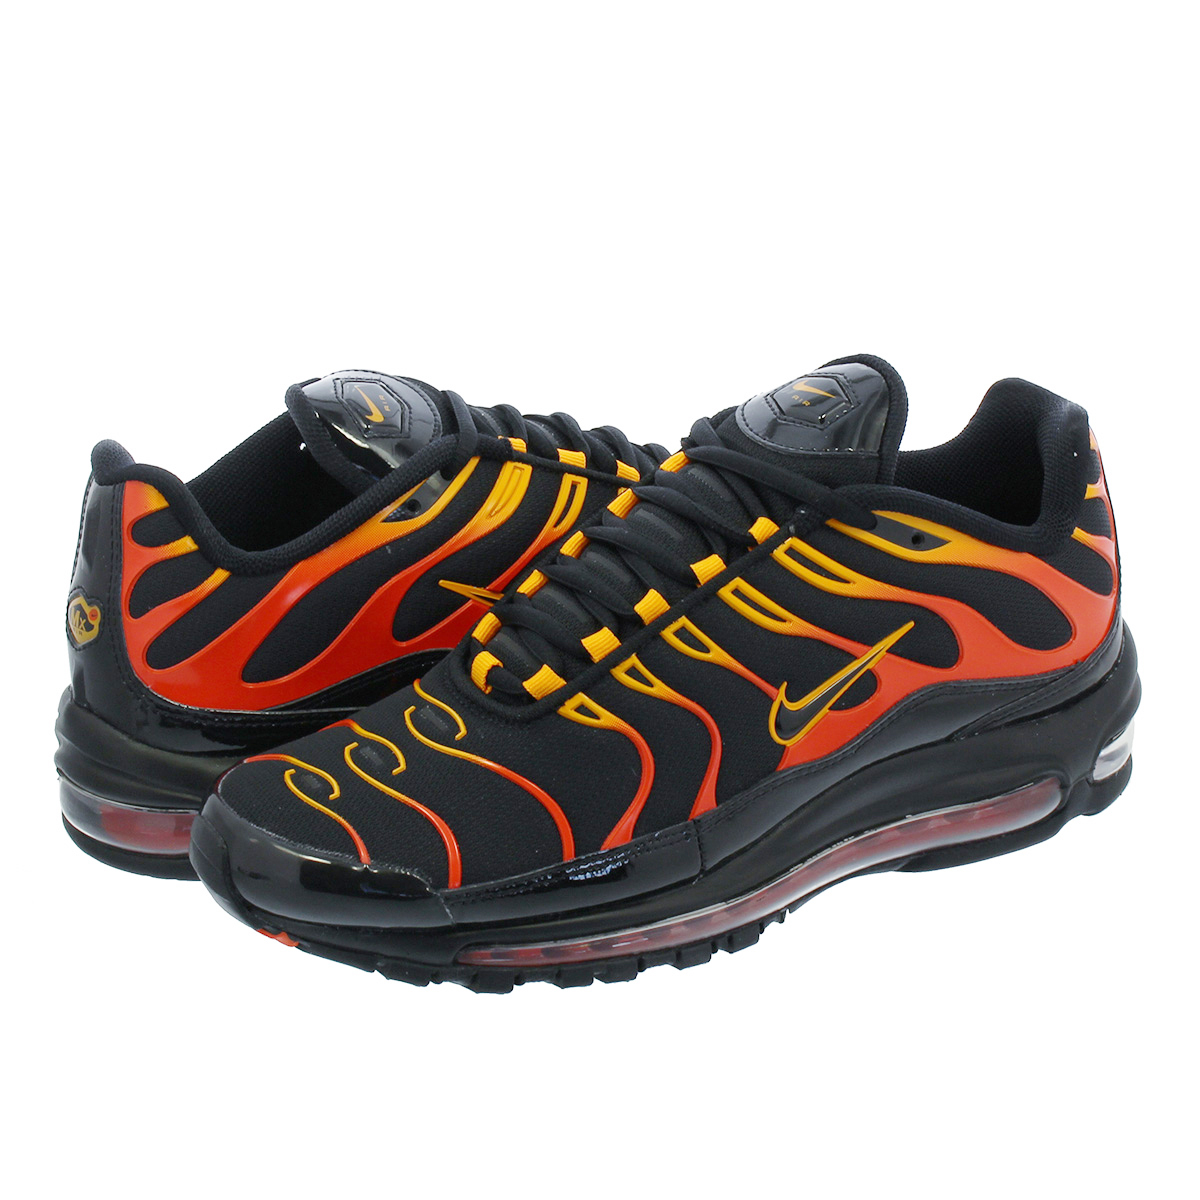 0577351a2c7 NIKE AIR MAX 97 PLUS Kie Ney AMAX 97 plus BLACK ENGINE 1  SHOCK ORANGE  ah8144-002